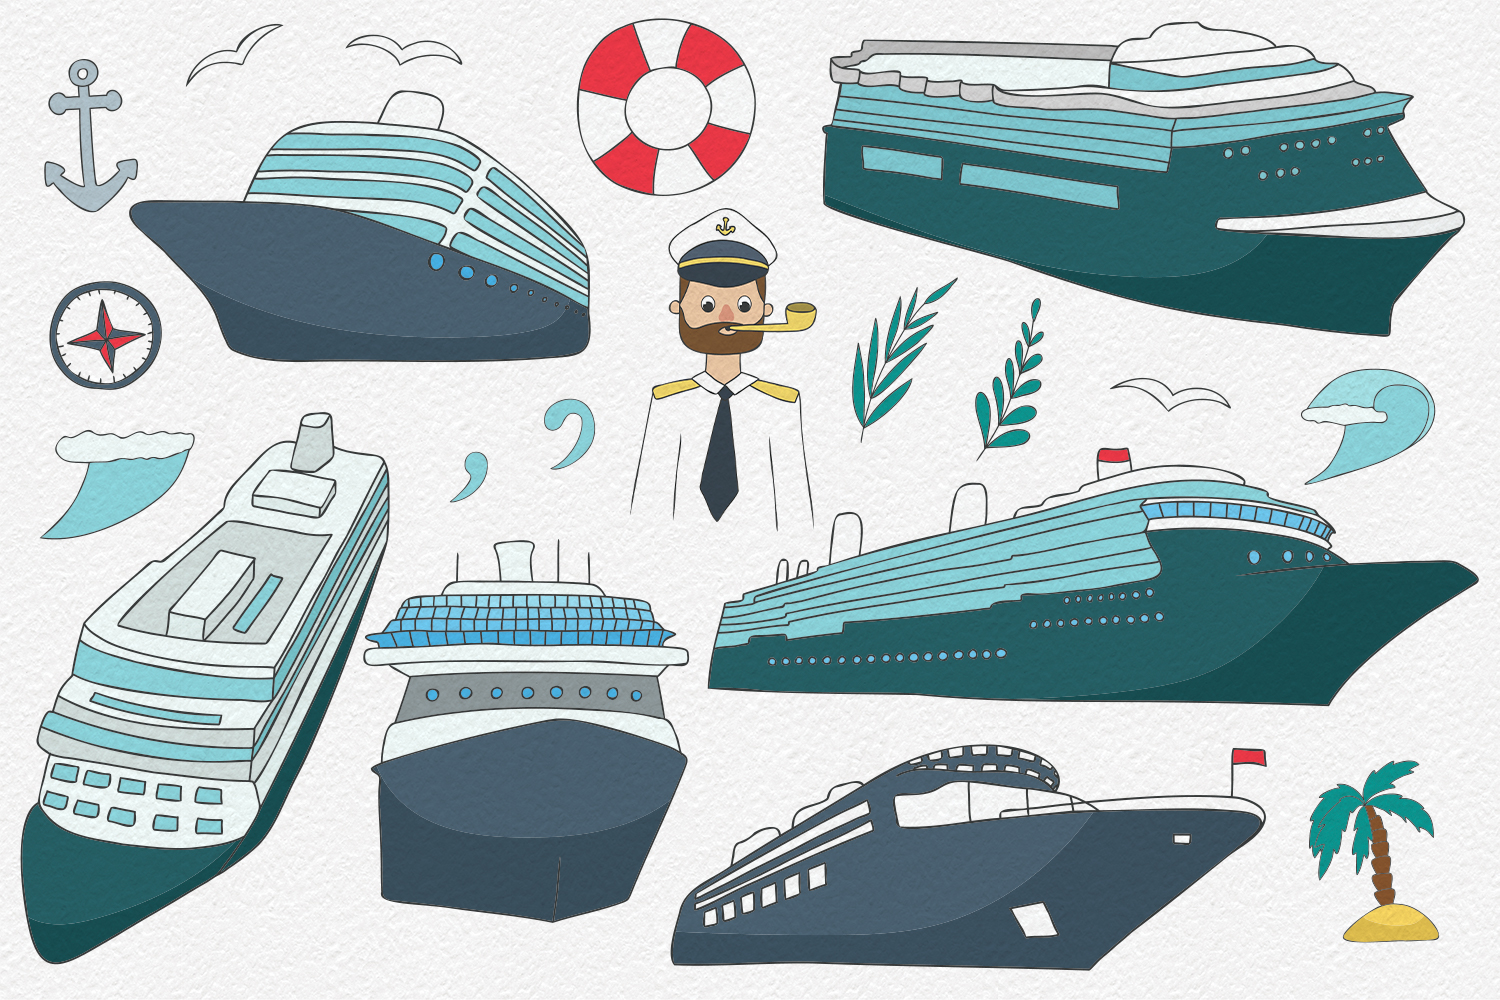 20 Cruise Ships Clipart Elements example image 2